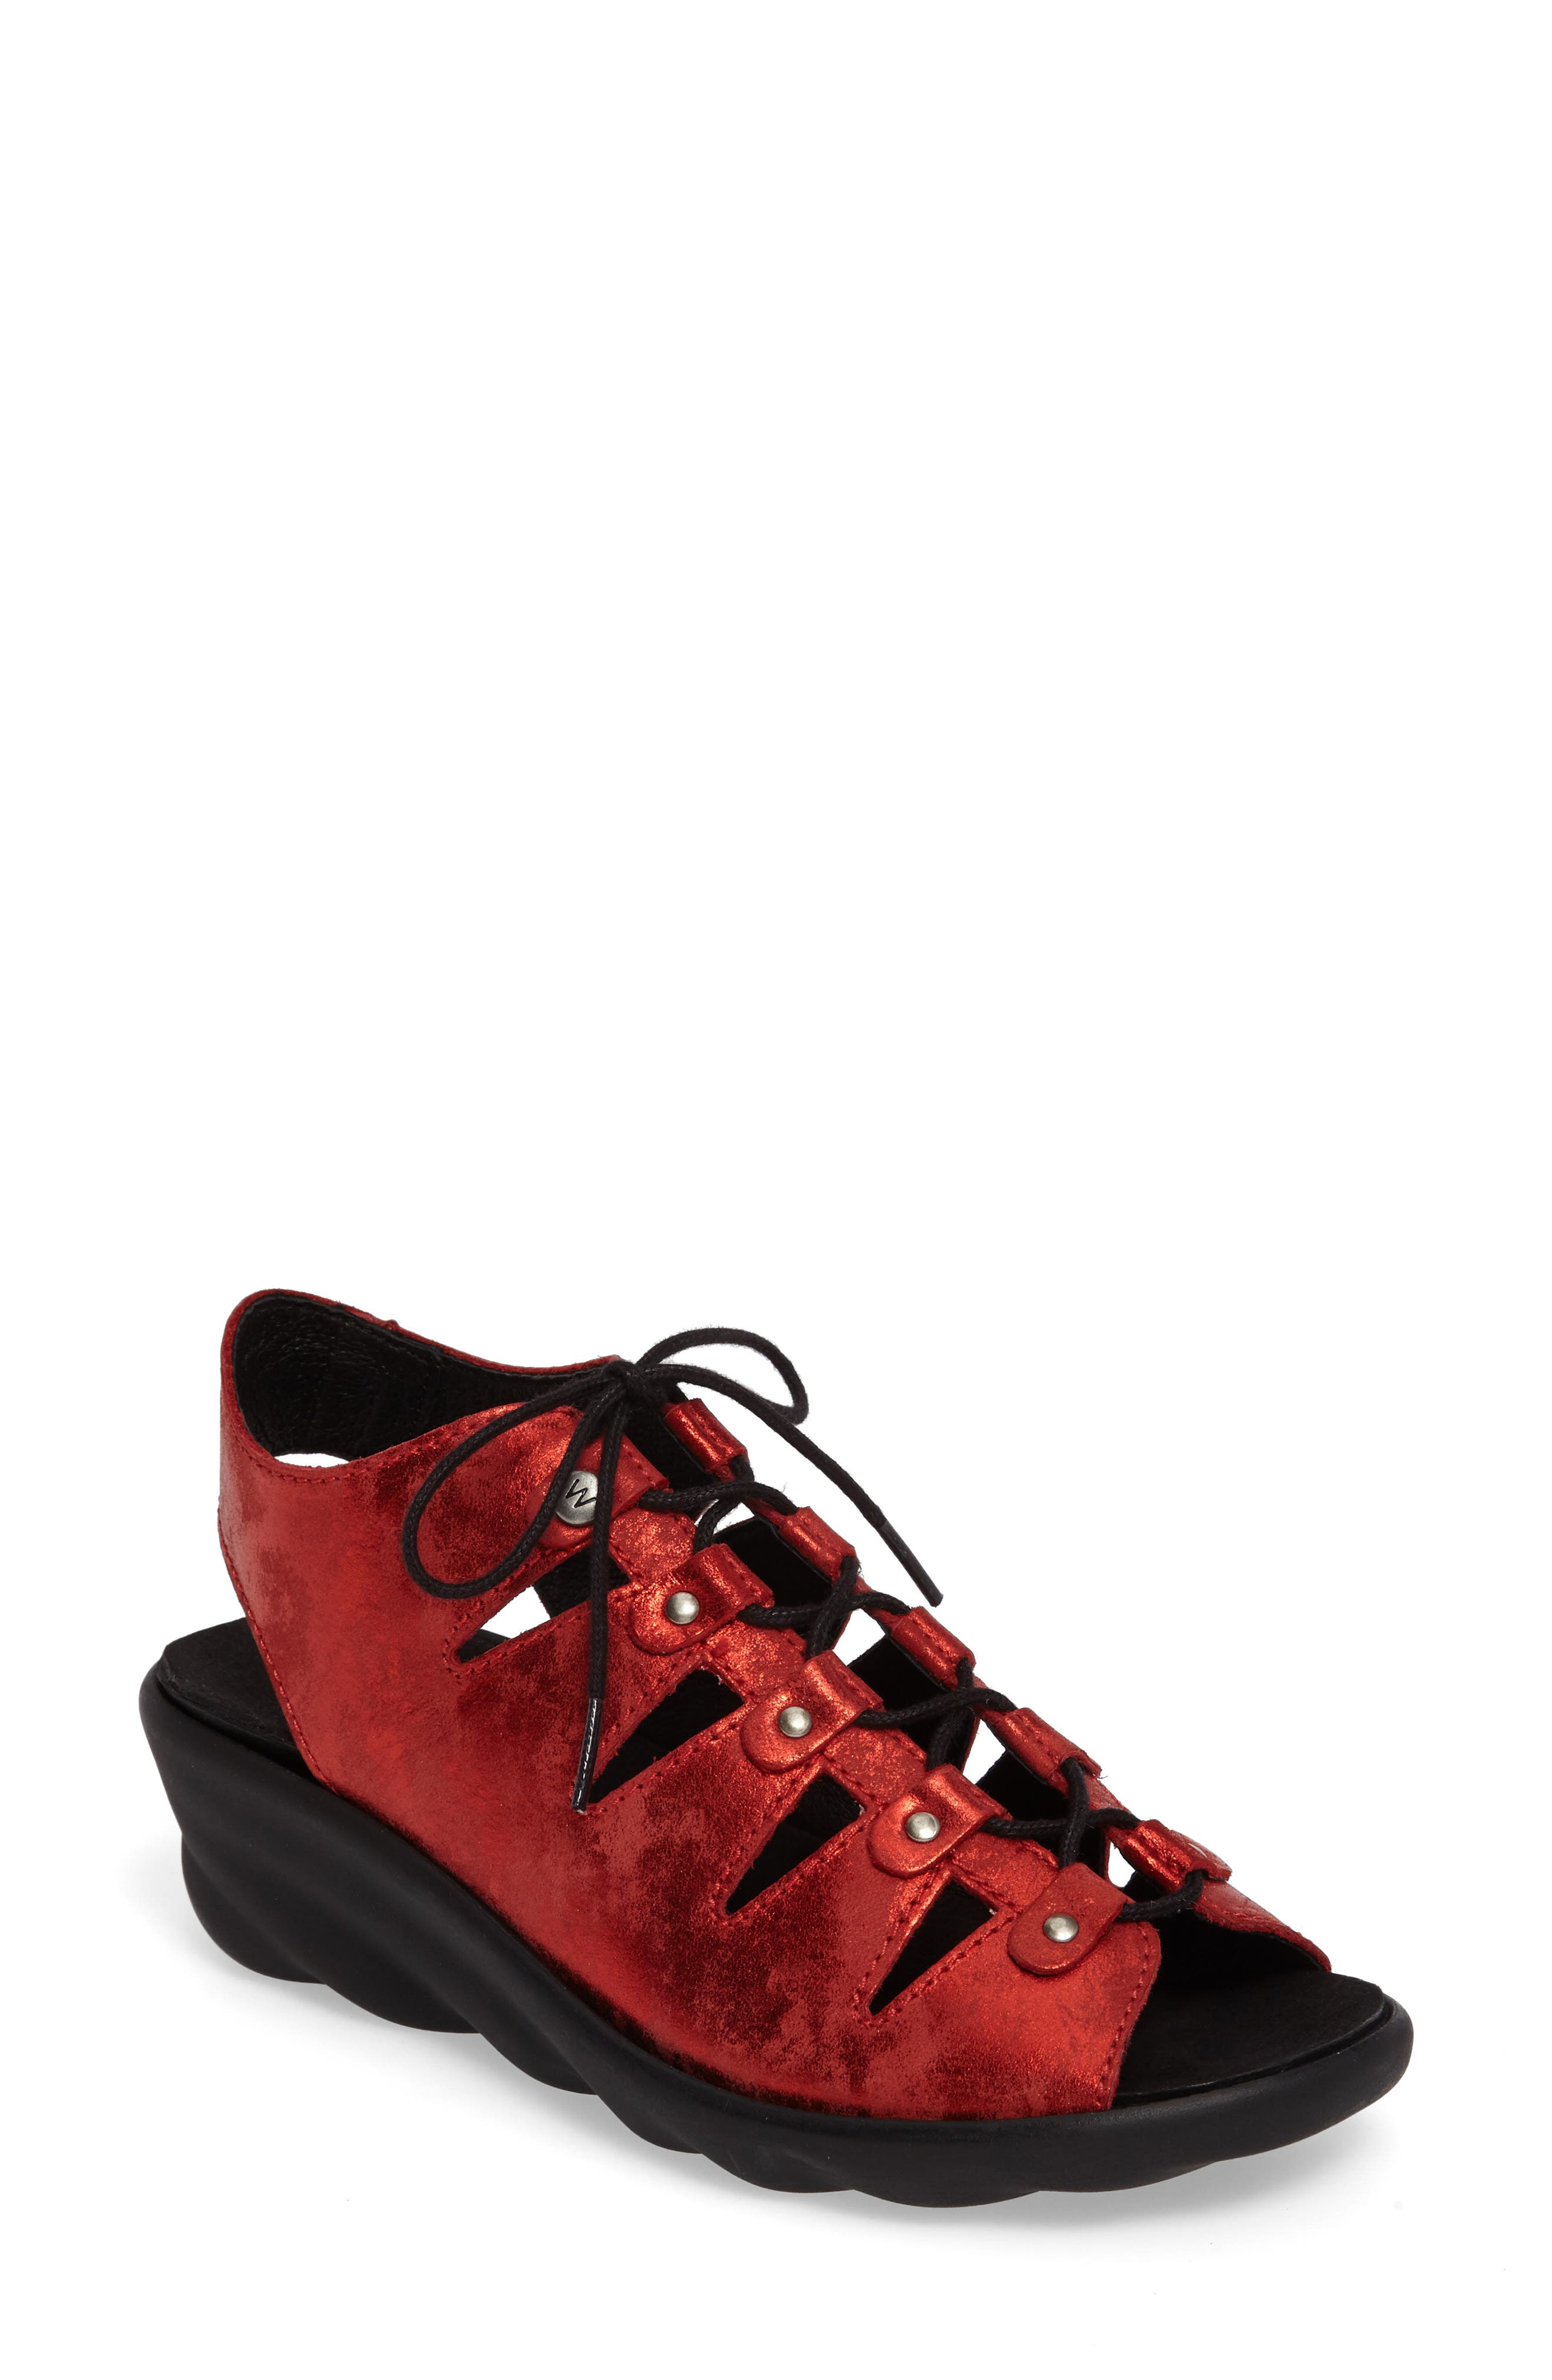 Alternate Image 1 Selected - Wolky Arena Sandal (Women)